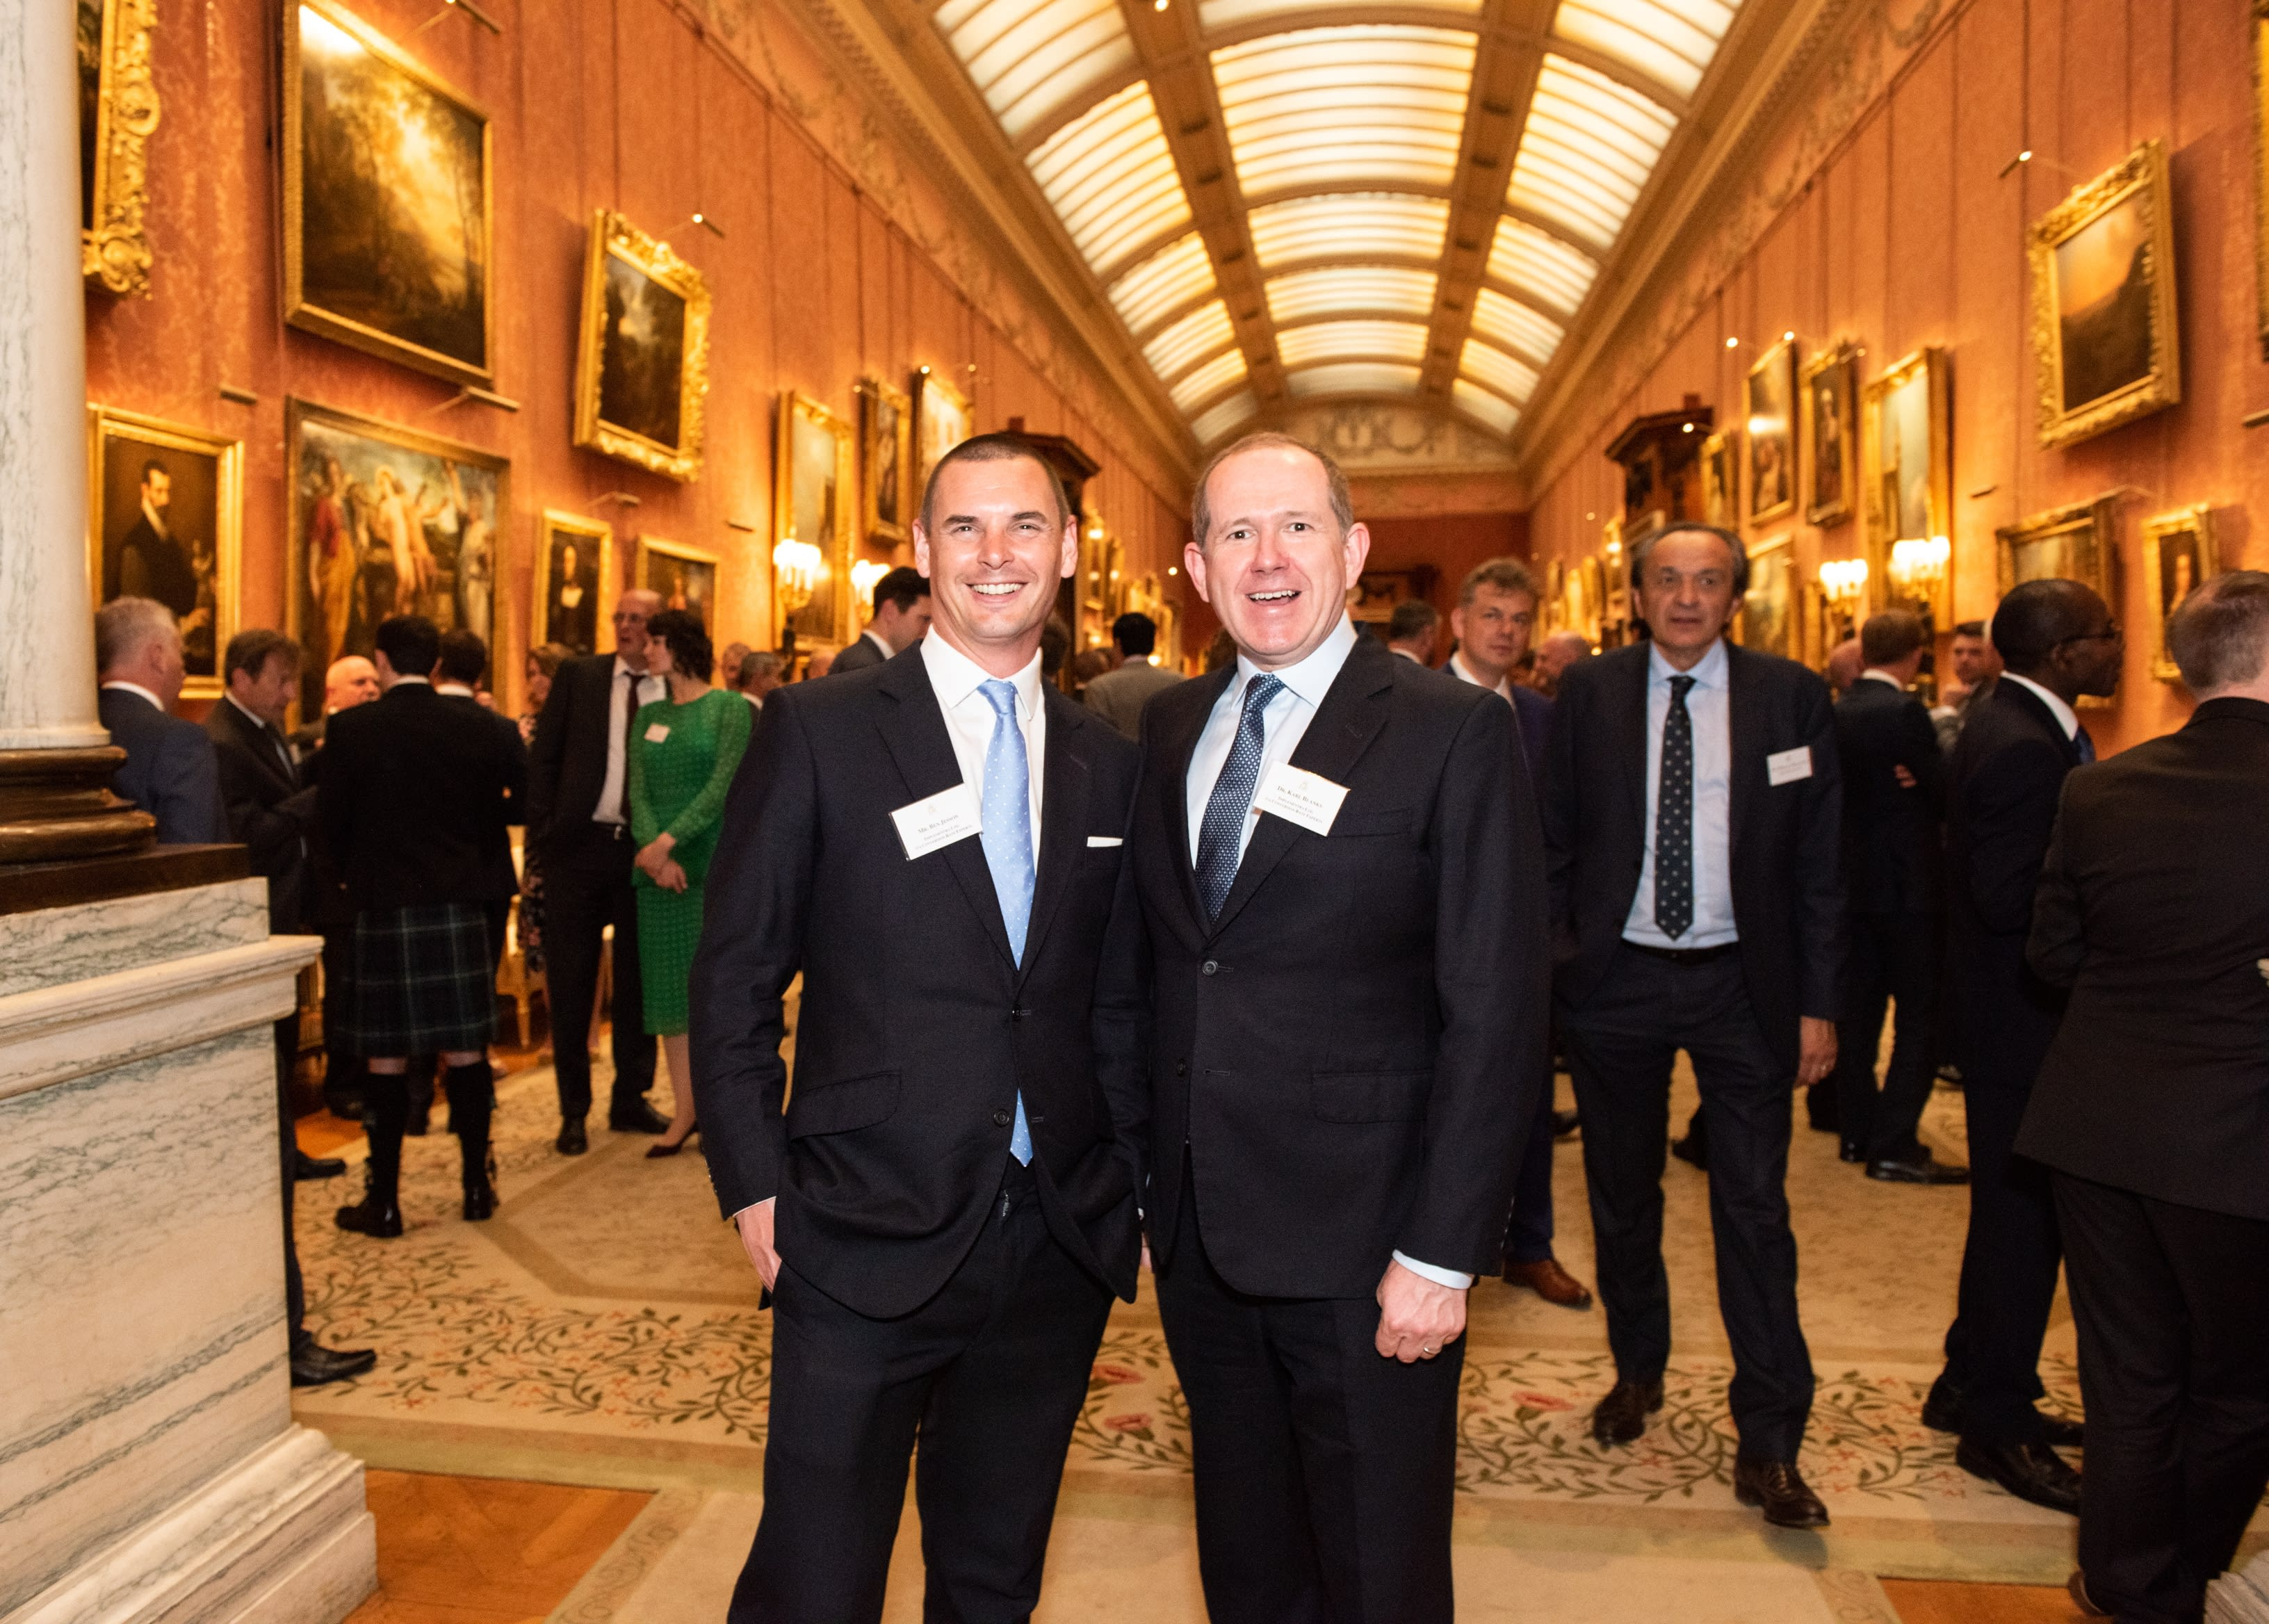 Our founders Karl and Ben in Buckingham Palace.